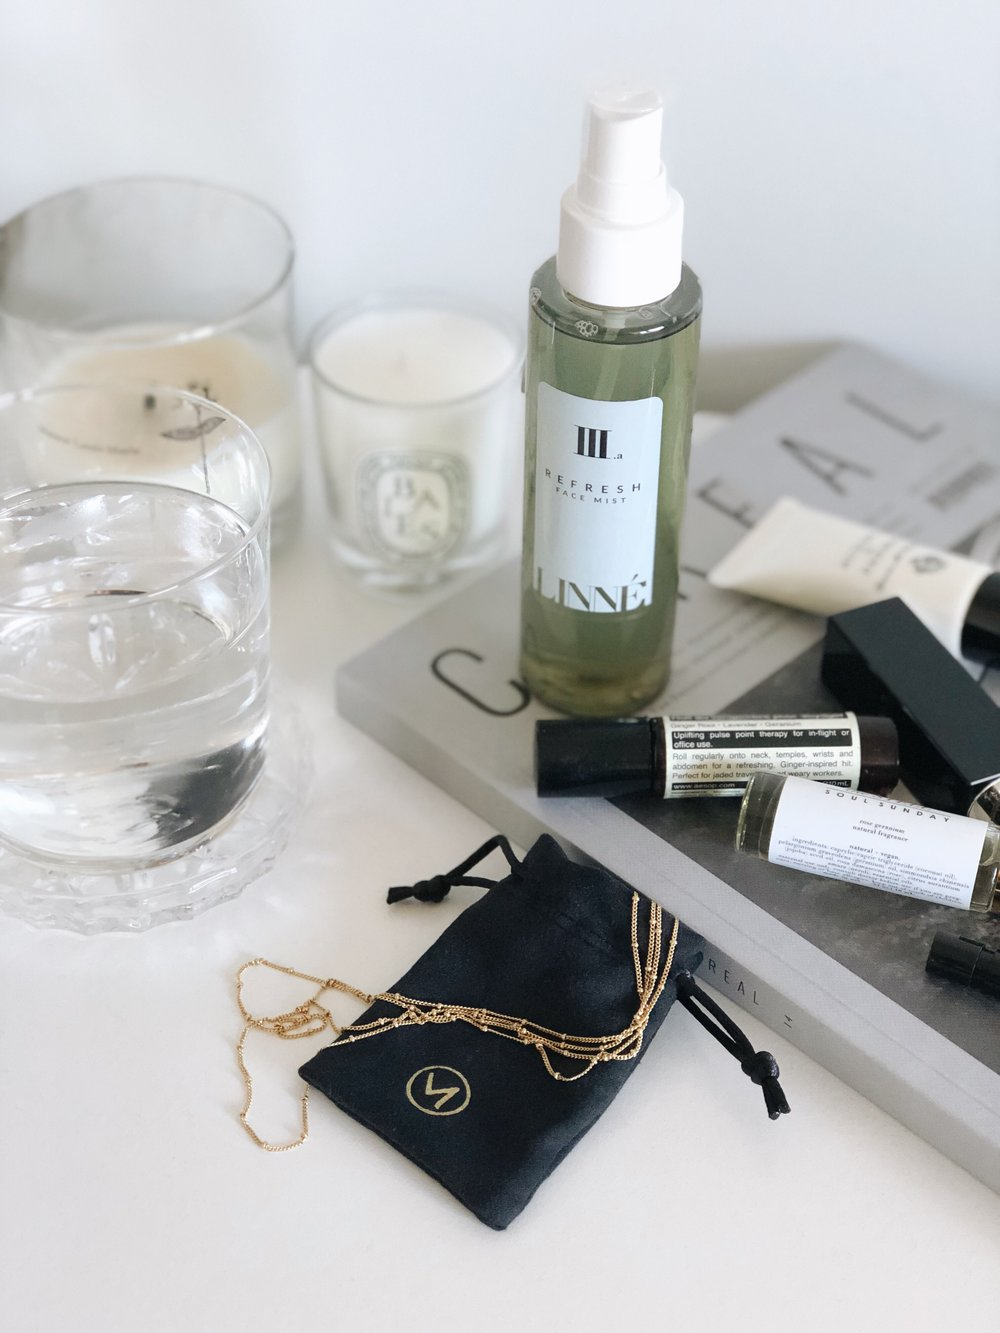 Linne Refresh Face Mist - Kind of Luxe Blog